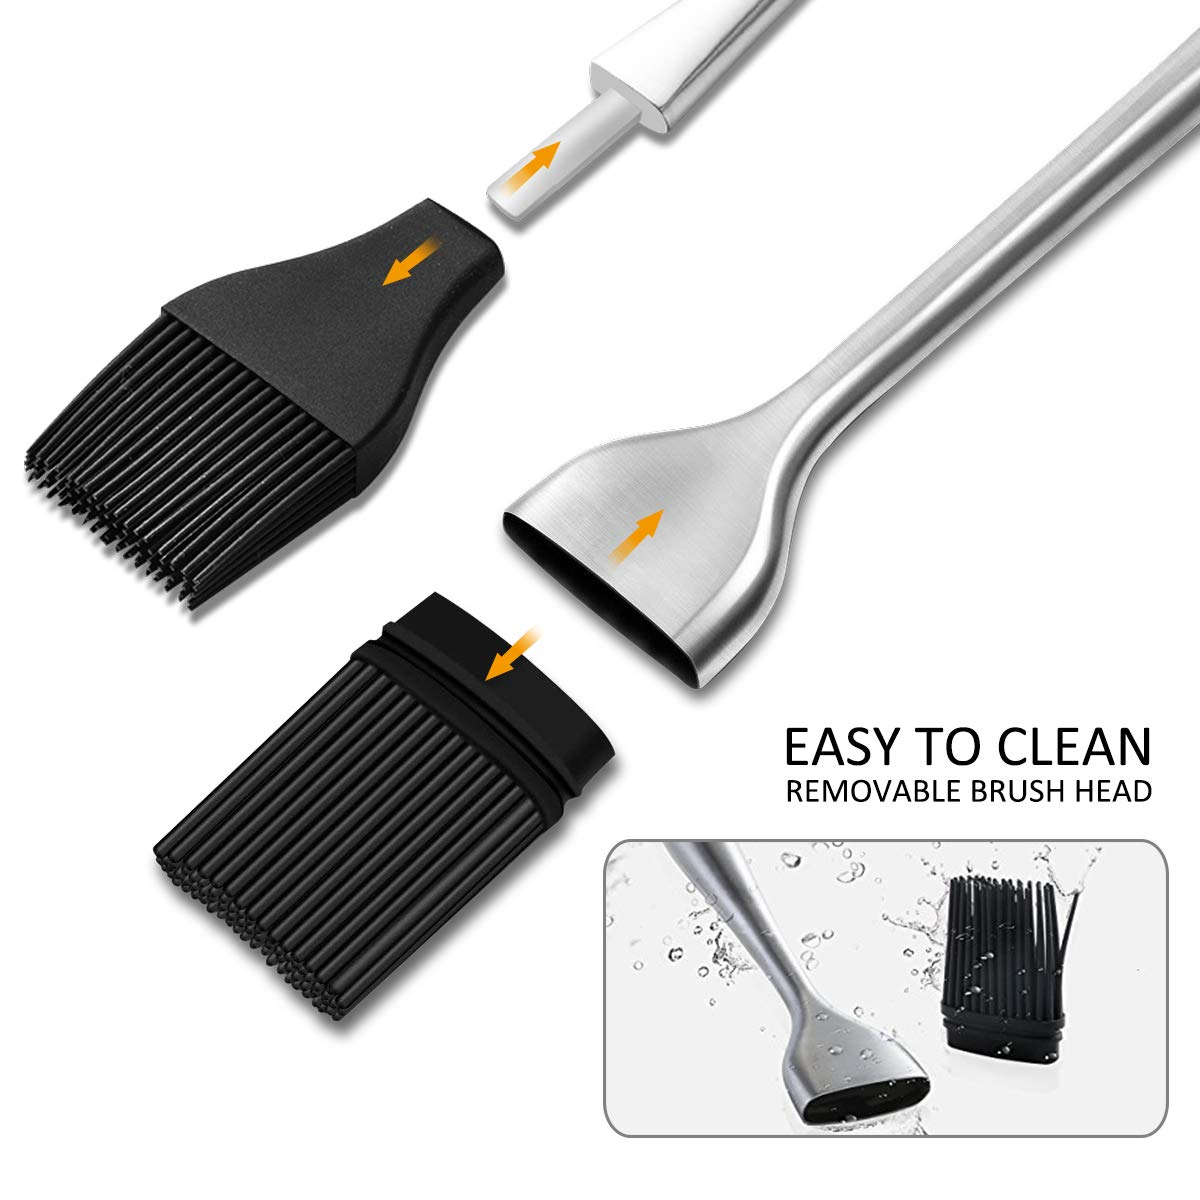 Hcomine Set of 5 Basting Brush, Pastry Silicone/Grill/BBQ/Sauce/Butter/Oil Brush with Flexible Heatproof Stainless Steel Handle 12'' and 7.9'',Food Grade FDA Approved, Dishwasher Safe, Bristle Free. by Hcomine (Image #5)